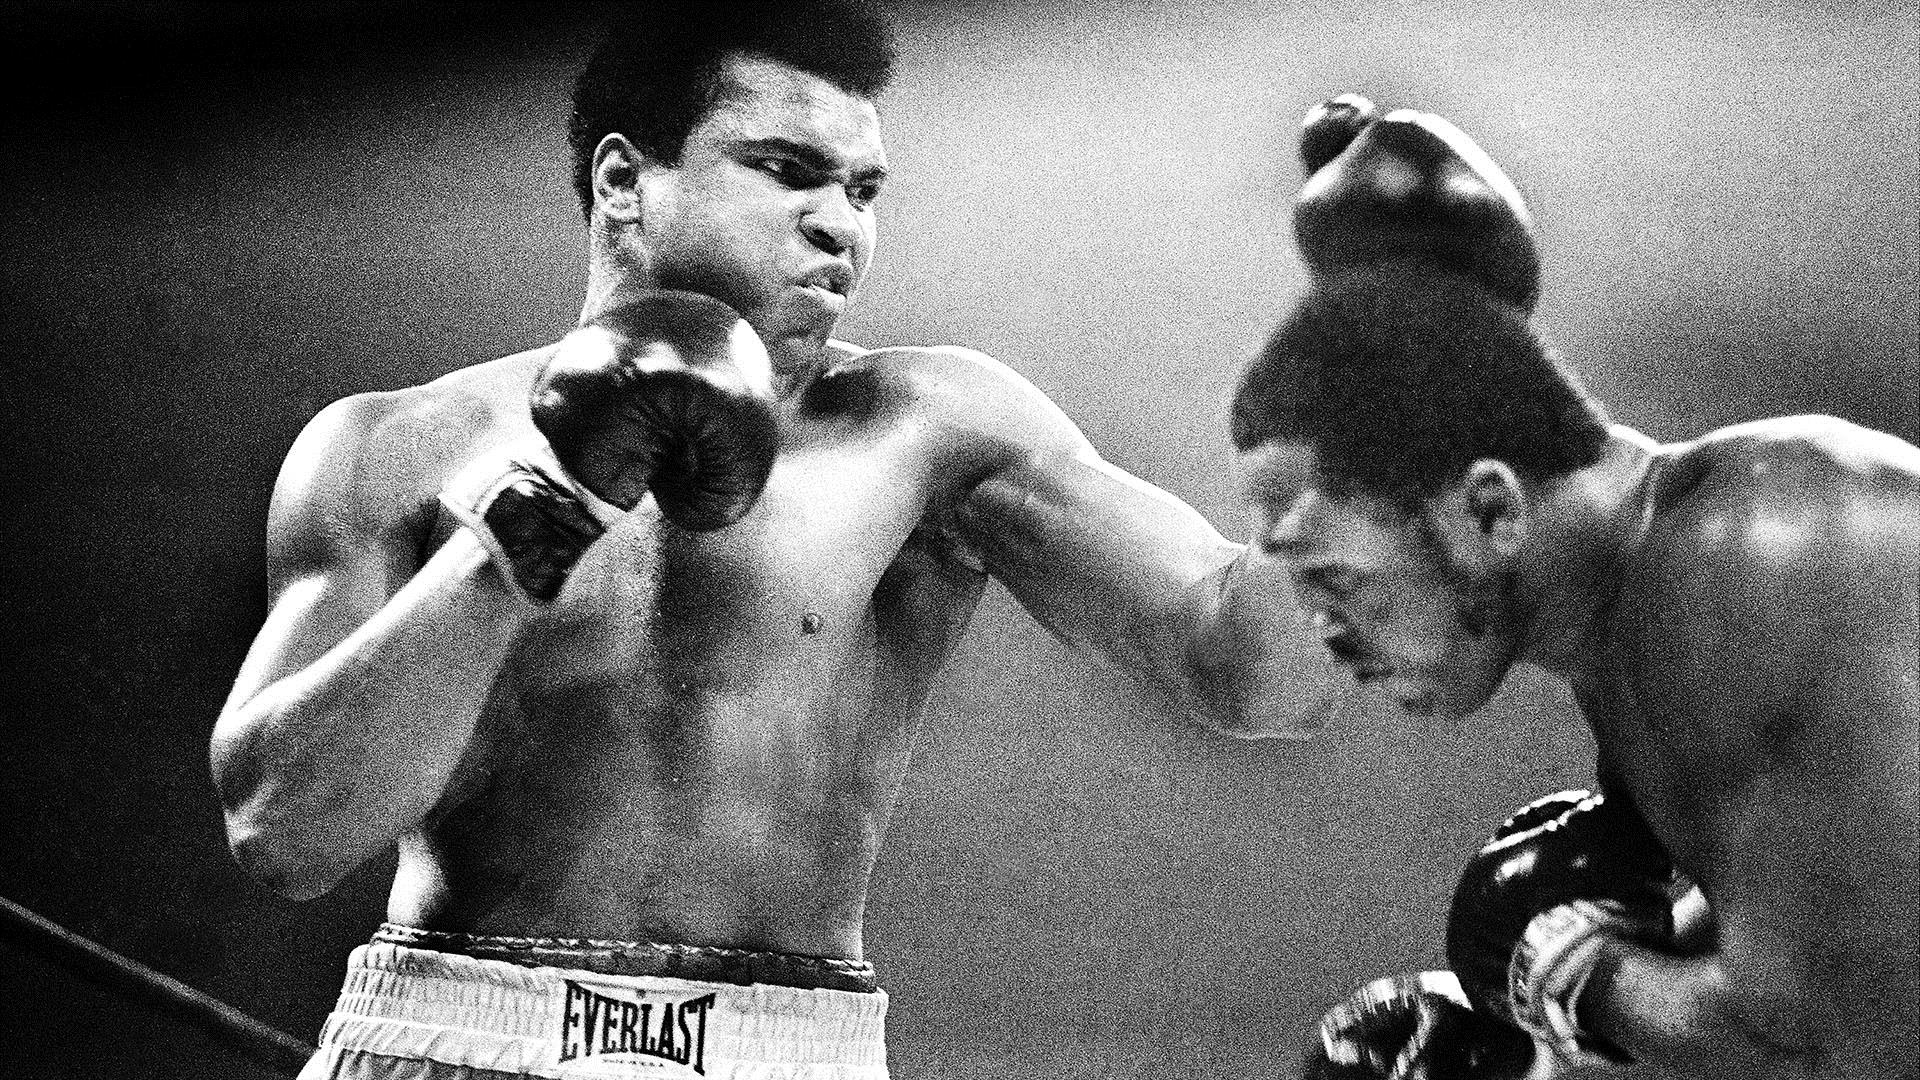 essays on muhammad ali Muhammad ali essay ring, muhammad ali's greatest battle ensued outside the ropes amidst a backdrop of the vietnam war and a steamrolling all muhammad ali essays.